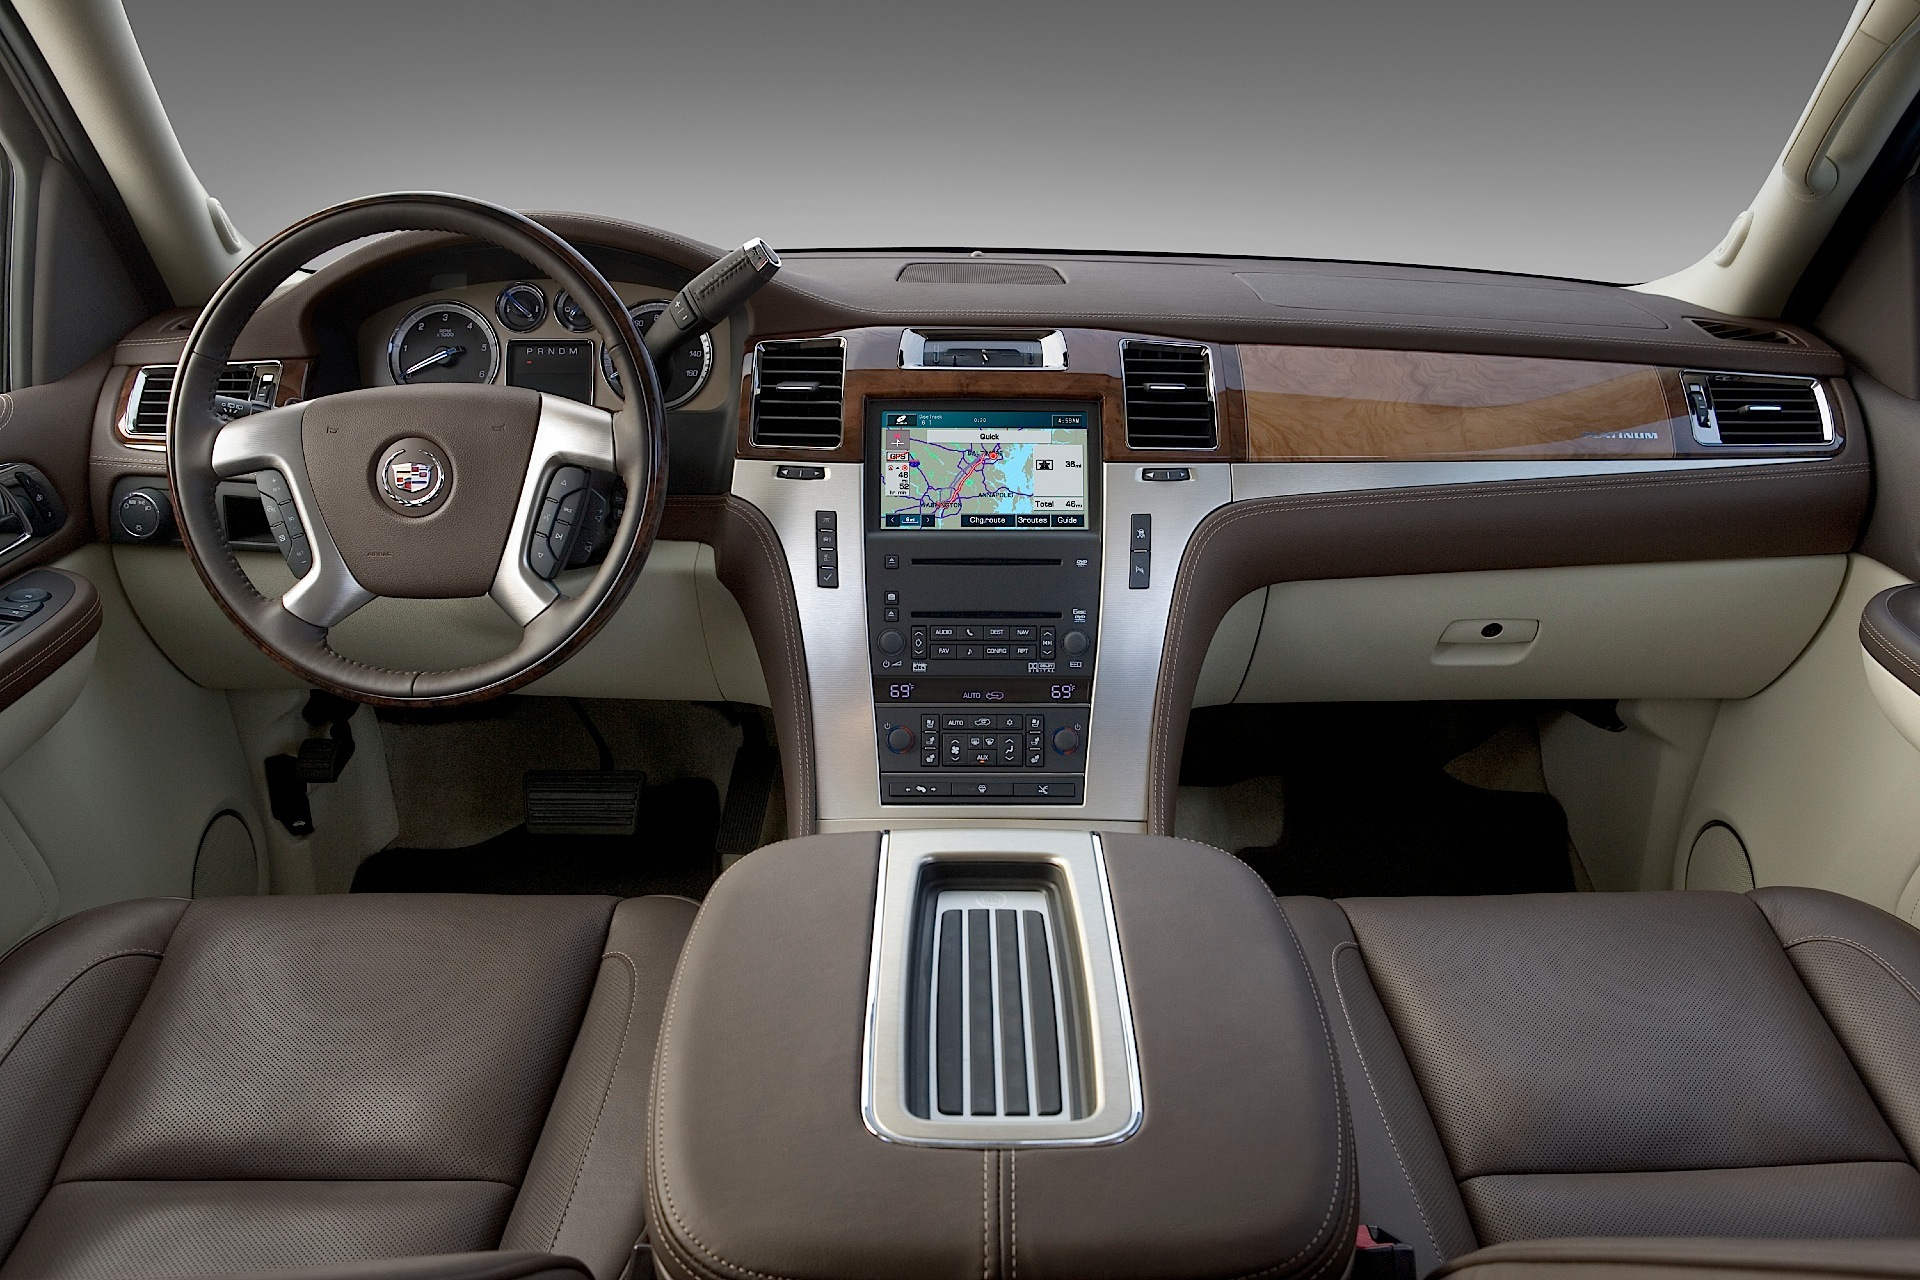 dp amazon and escalade reviews images drive com vehicles door specs cadillac all wheel base